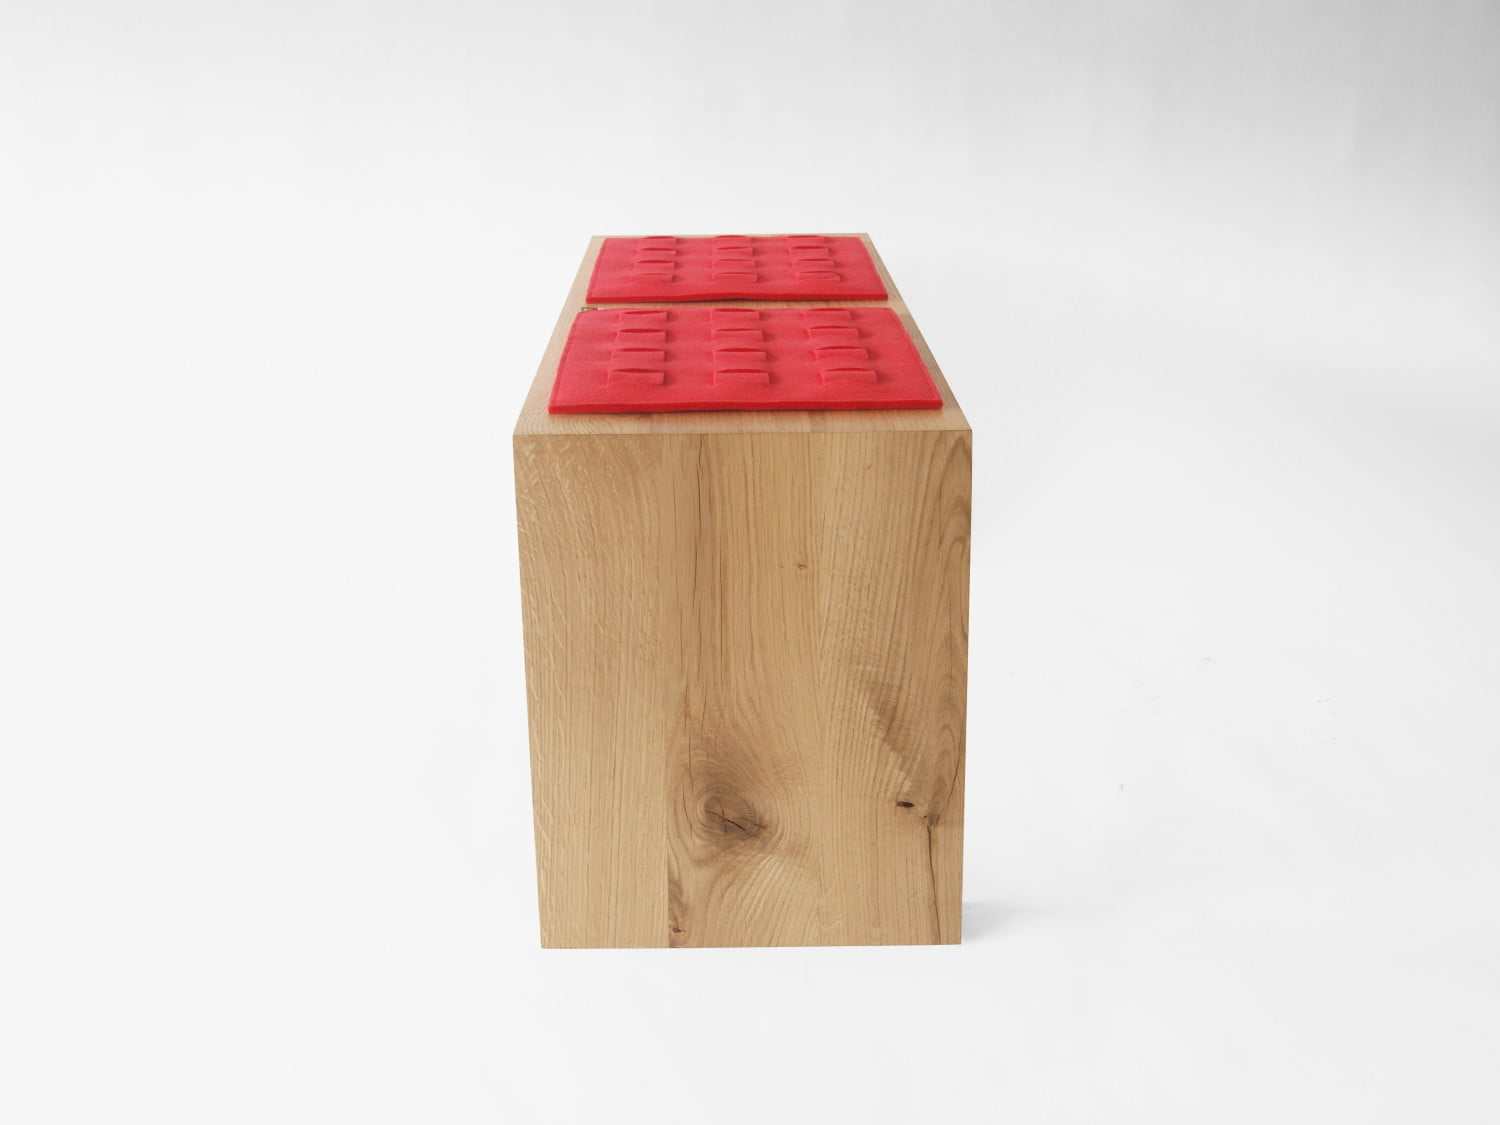 oak wooden simple minimalist bench with red felt pads